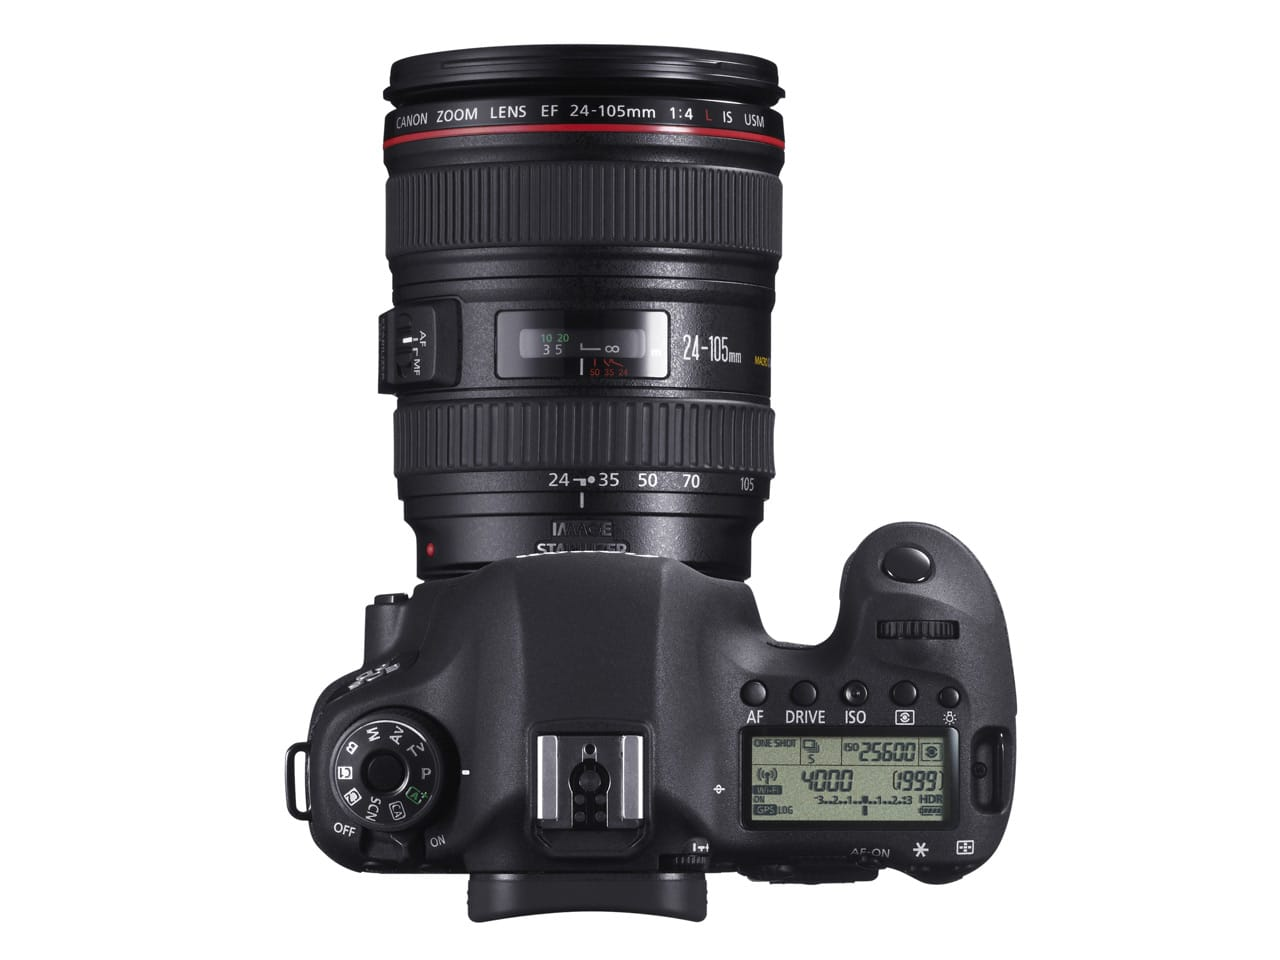 Canon Launches Entry Level Full Frame Camera Eos 6d